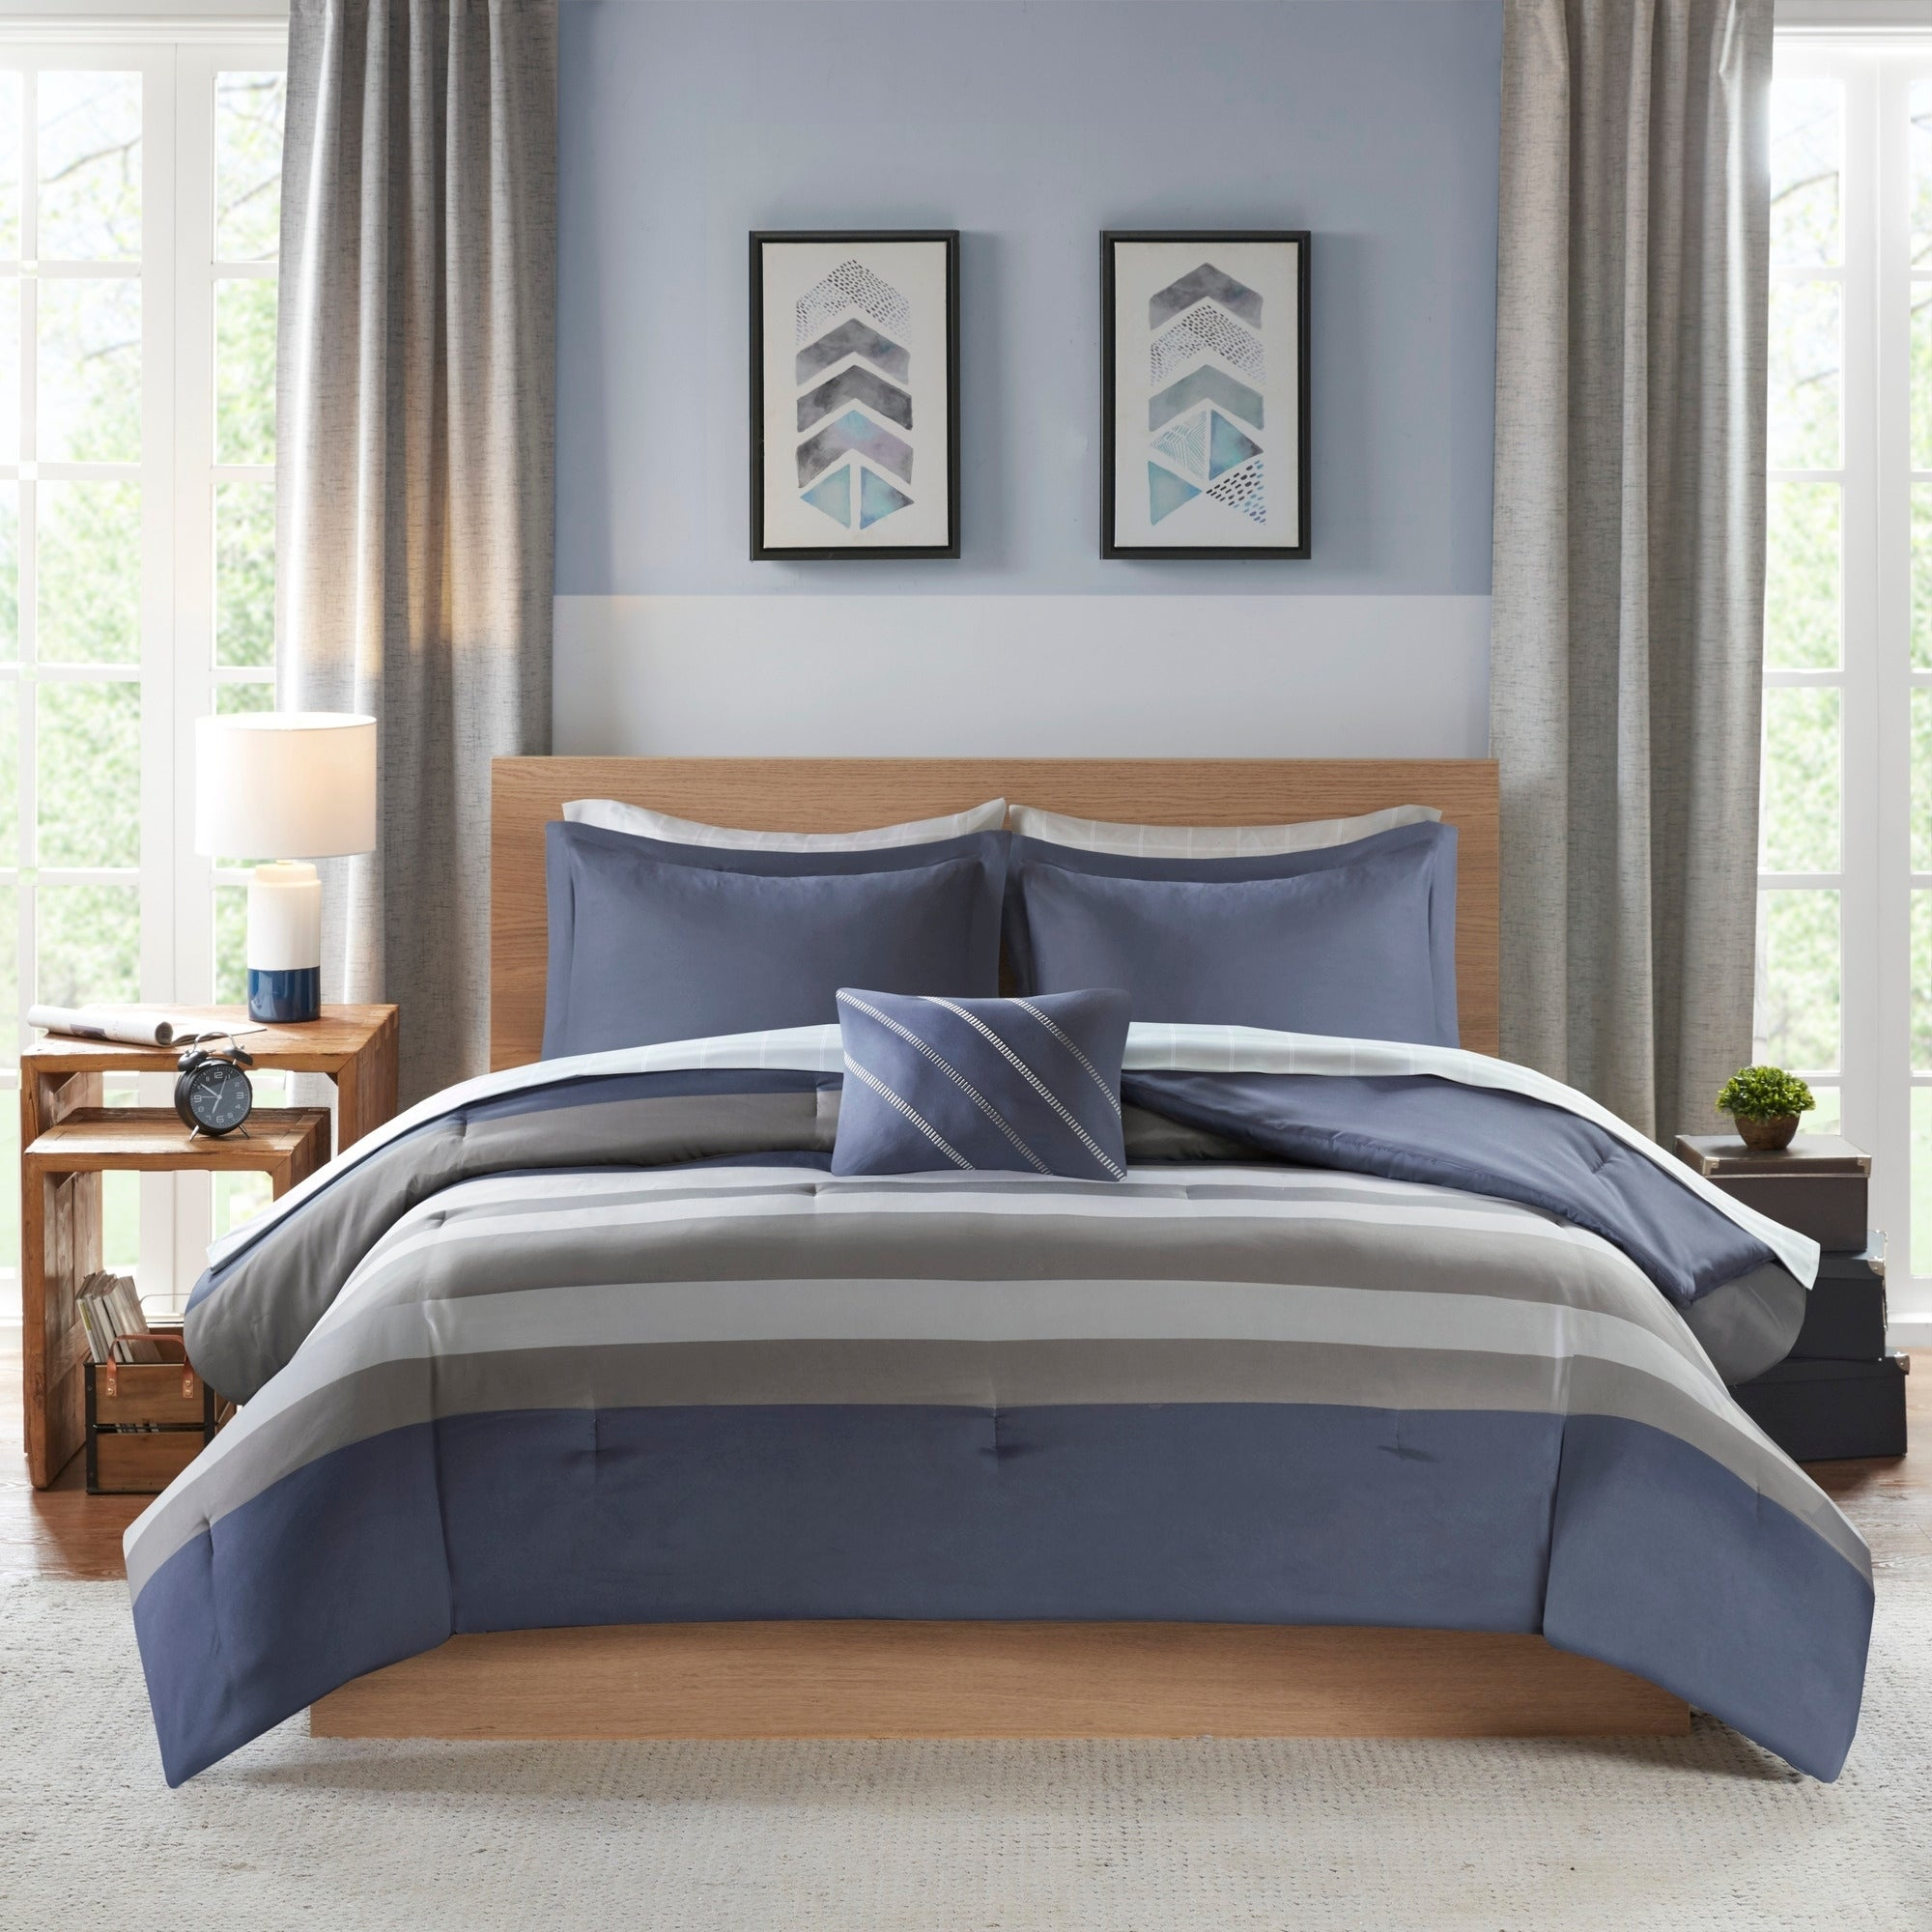 8 Piece Intelligent Design James Blue Grey Complete Bed Set Including Sheets In Queen Size As Is Item Overstock 28988193